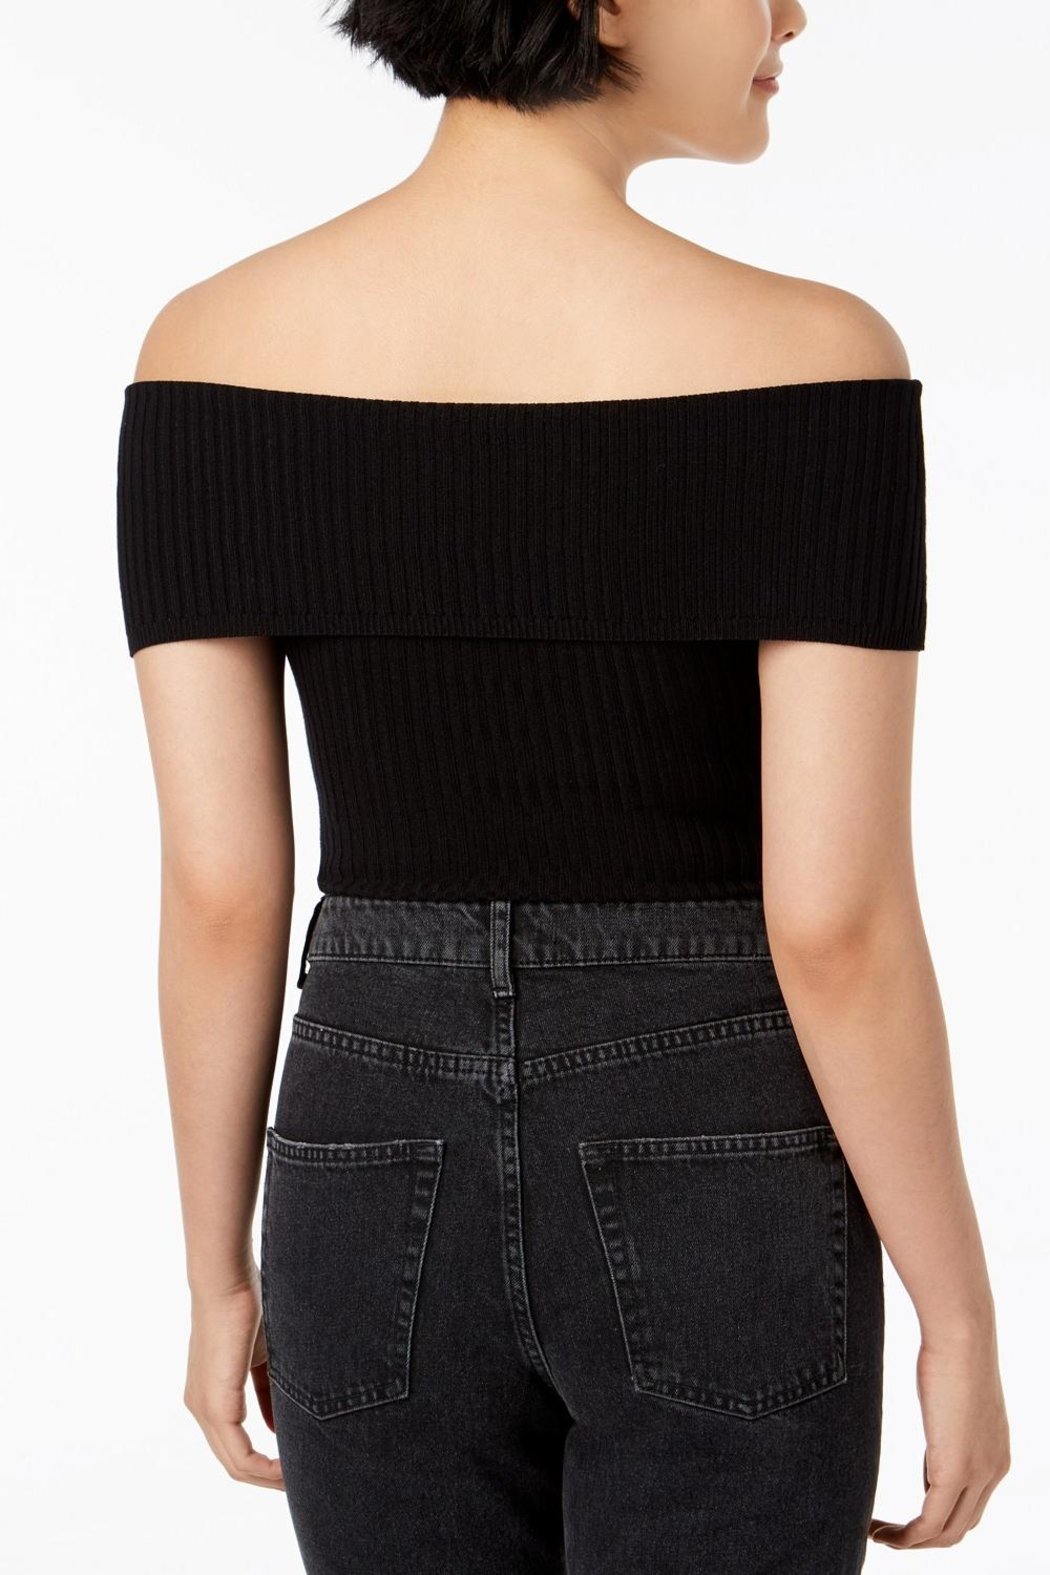 Free People Too Good Bodysuit - Front Full Image